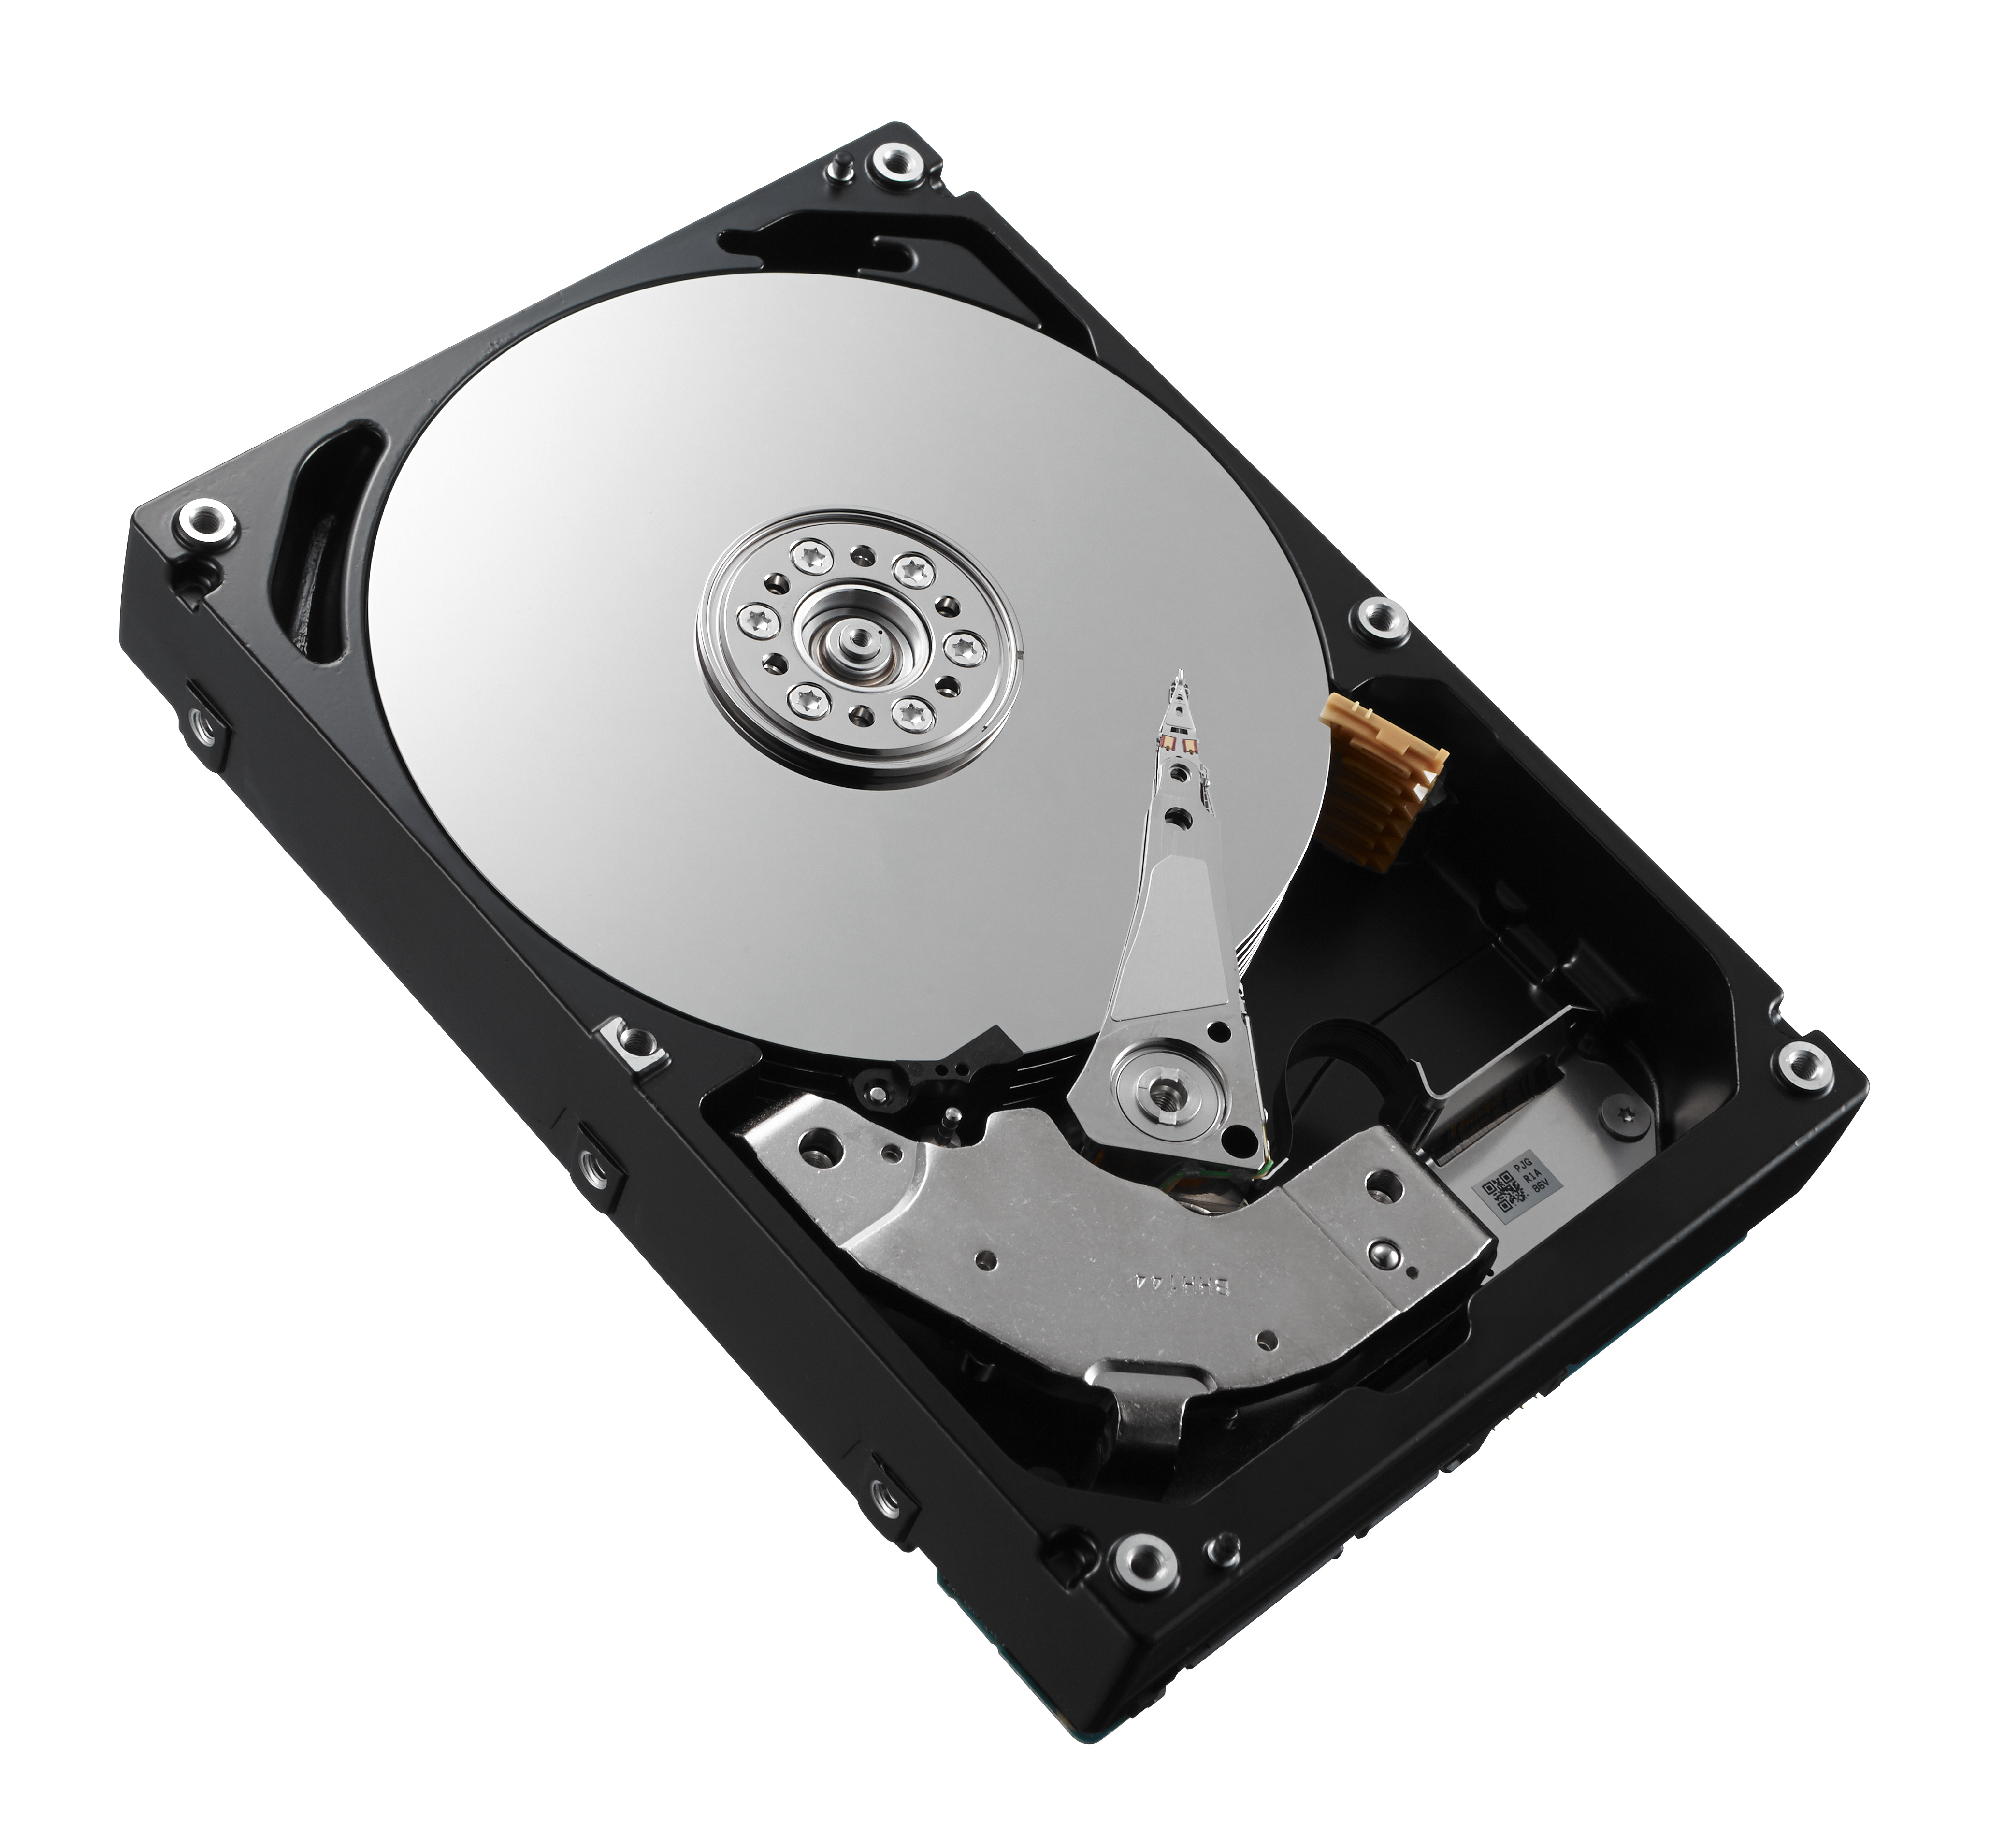 A2975035 DELL 600Gb 15K 3.5 6G SAS HDD Refurbished with 1 year warranty